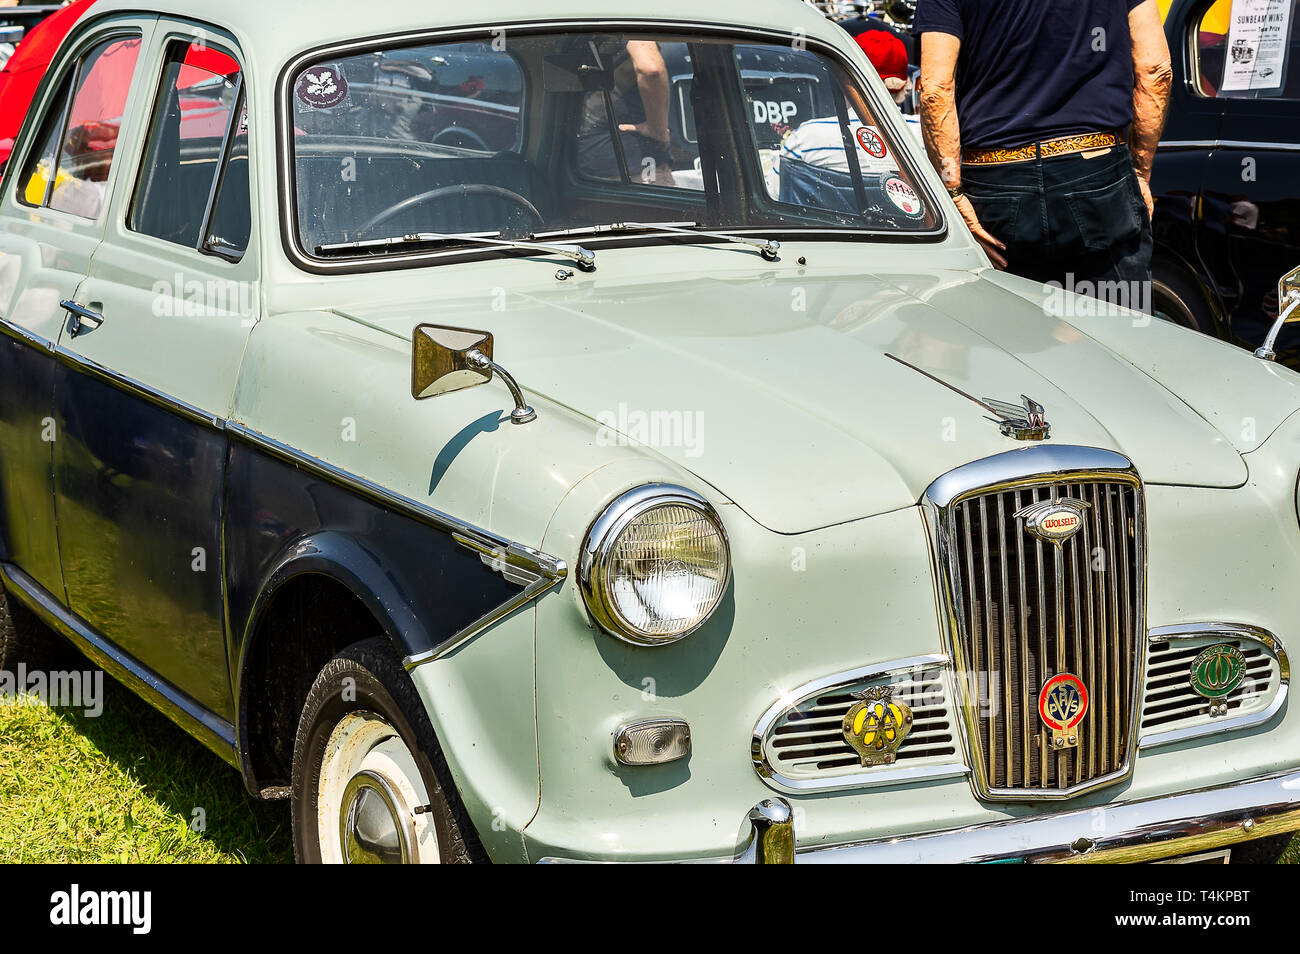 A 1950's Wolsely 1500 on display at a car show - Stock Image